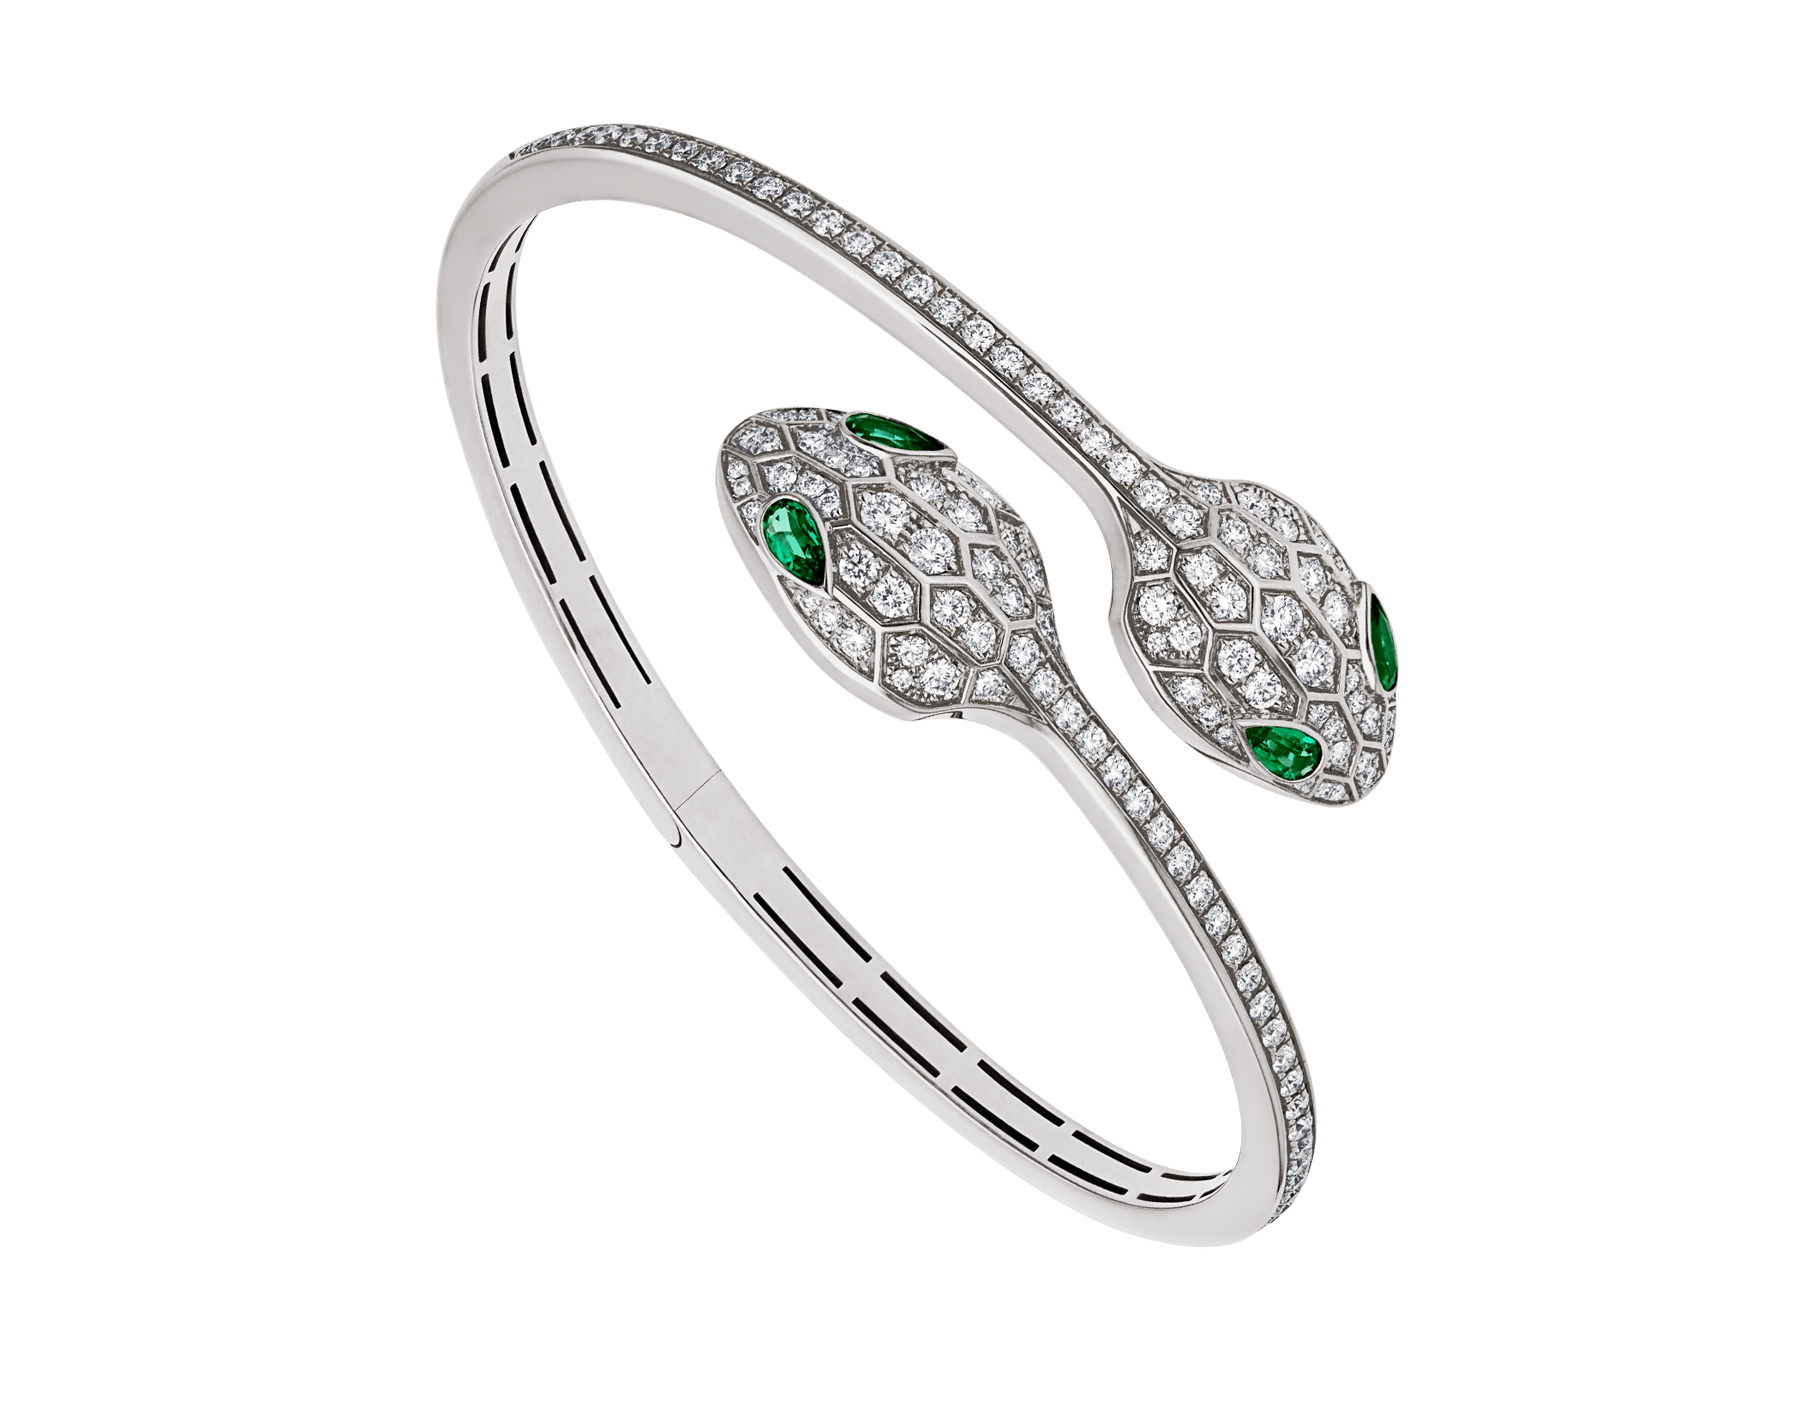 Serpenti 18 kt white gold bracelet set with emerald eyes and pavé diamonds. BR858551 image 1